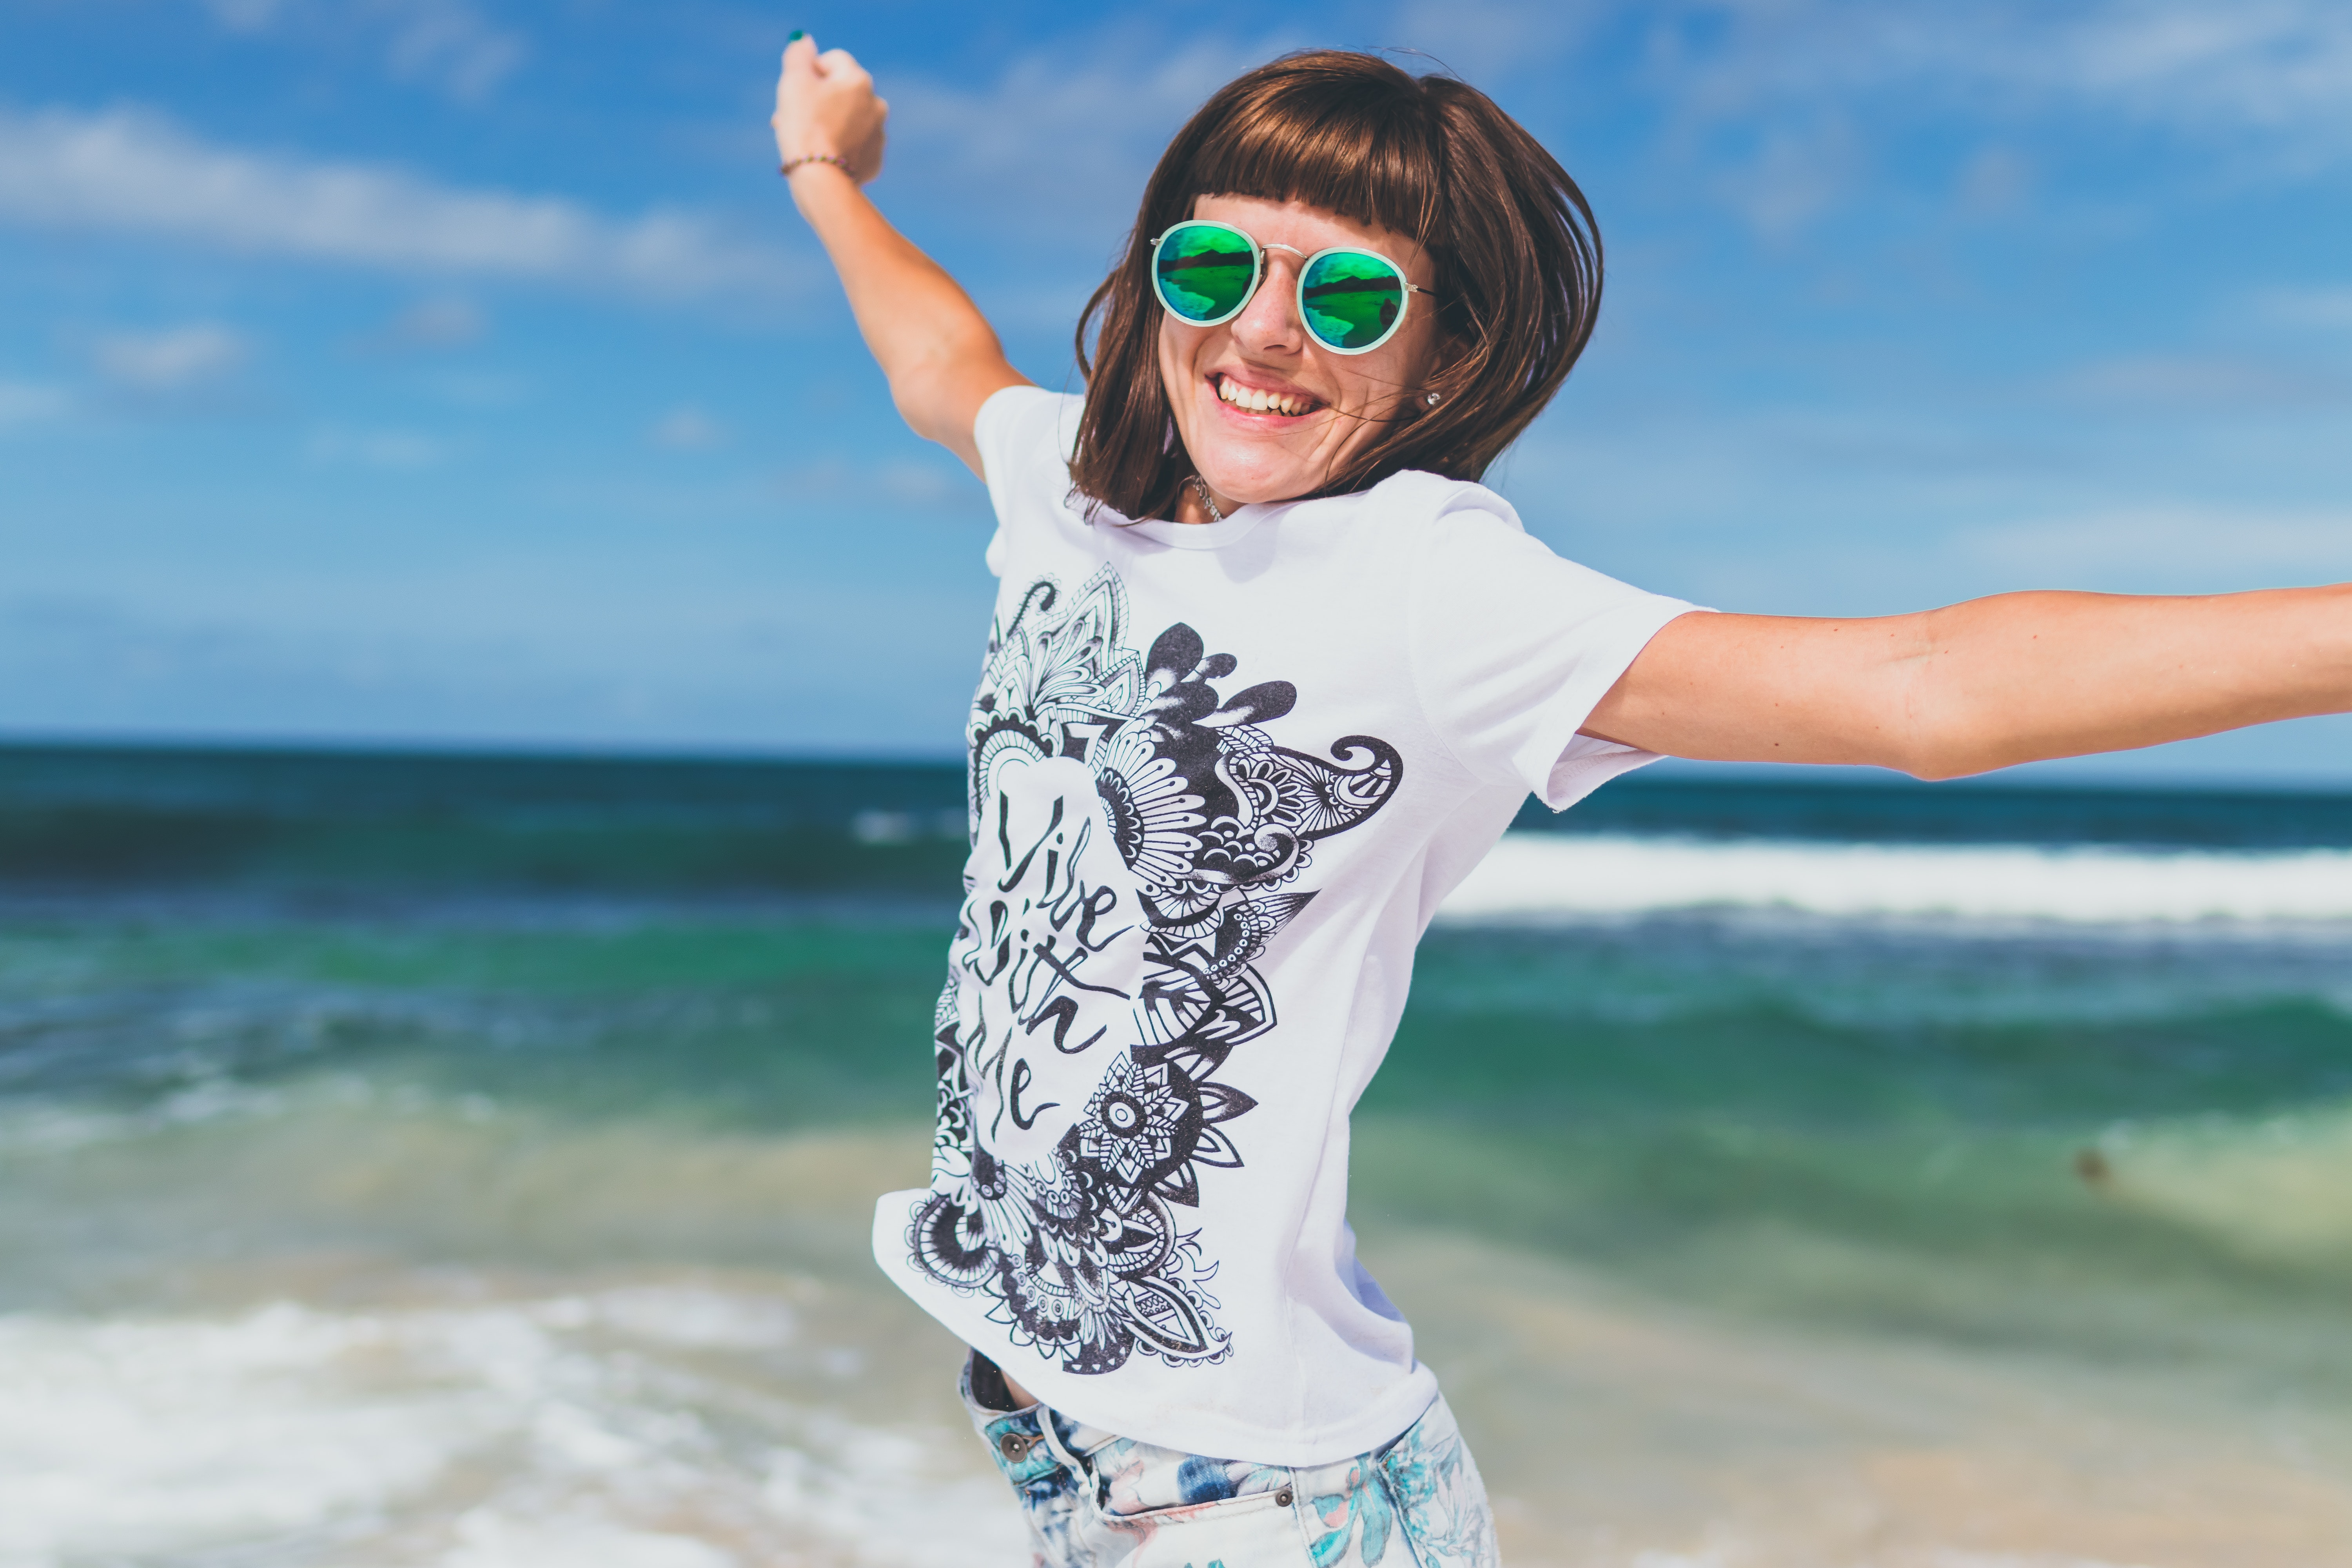 Woman in white and black t-shirt lifting hands smiling on seashore photo